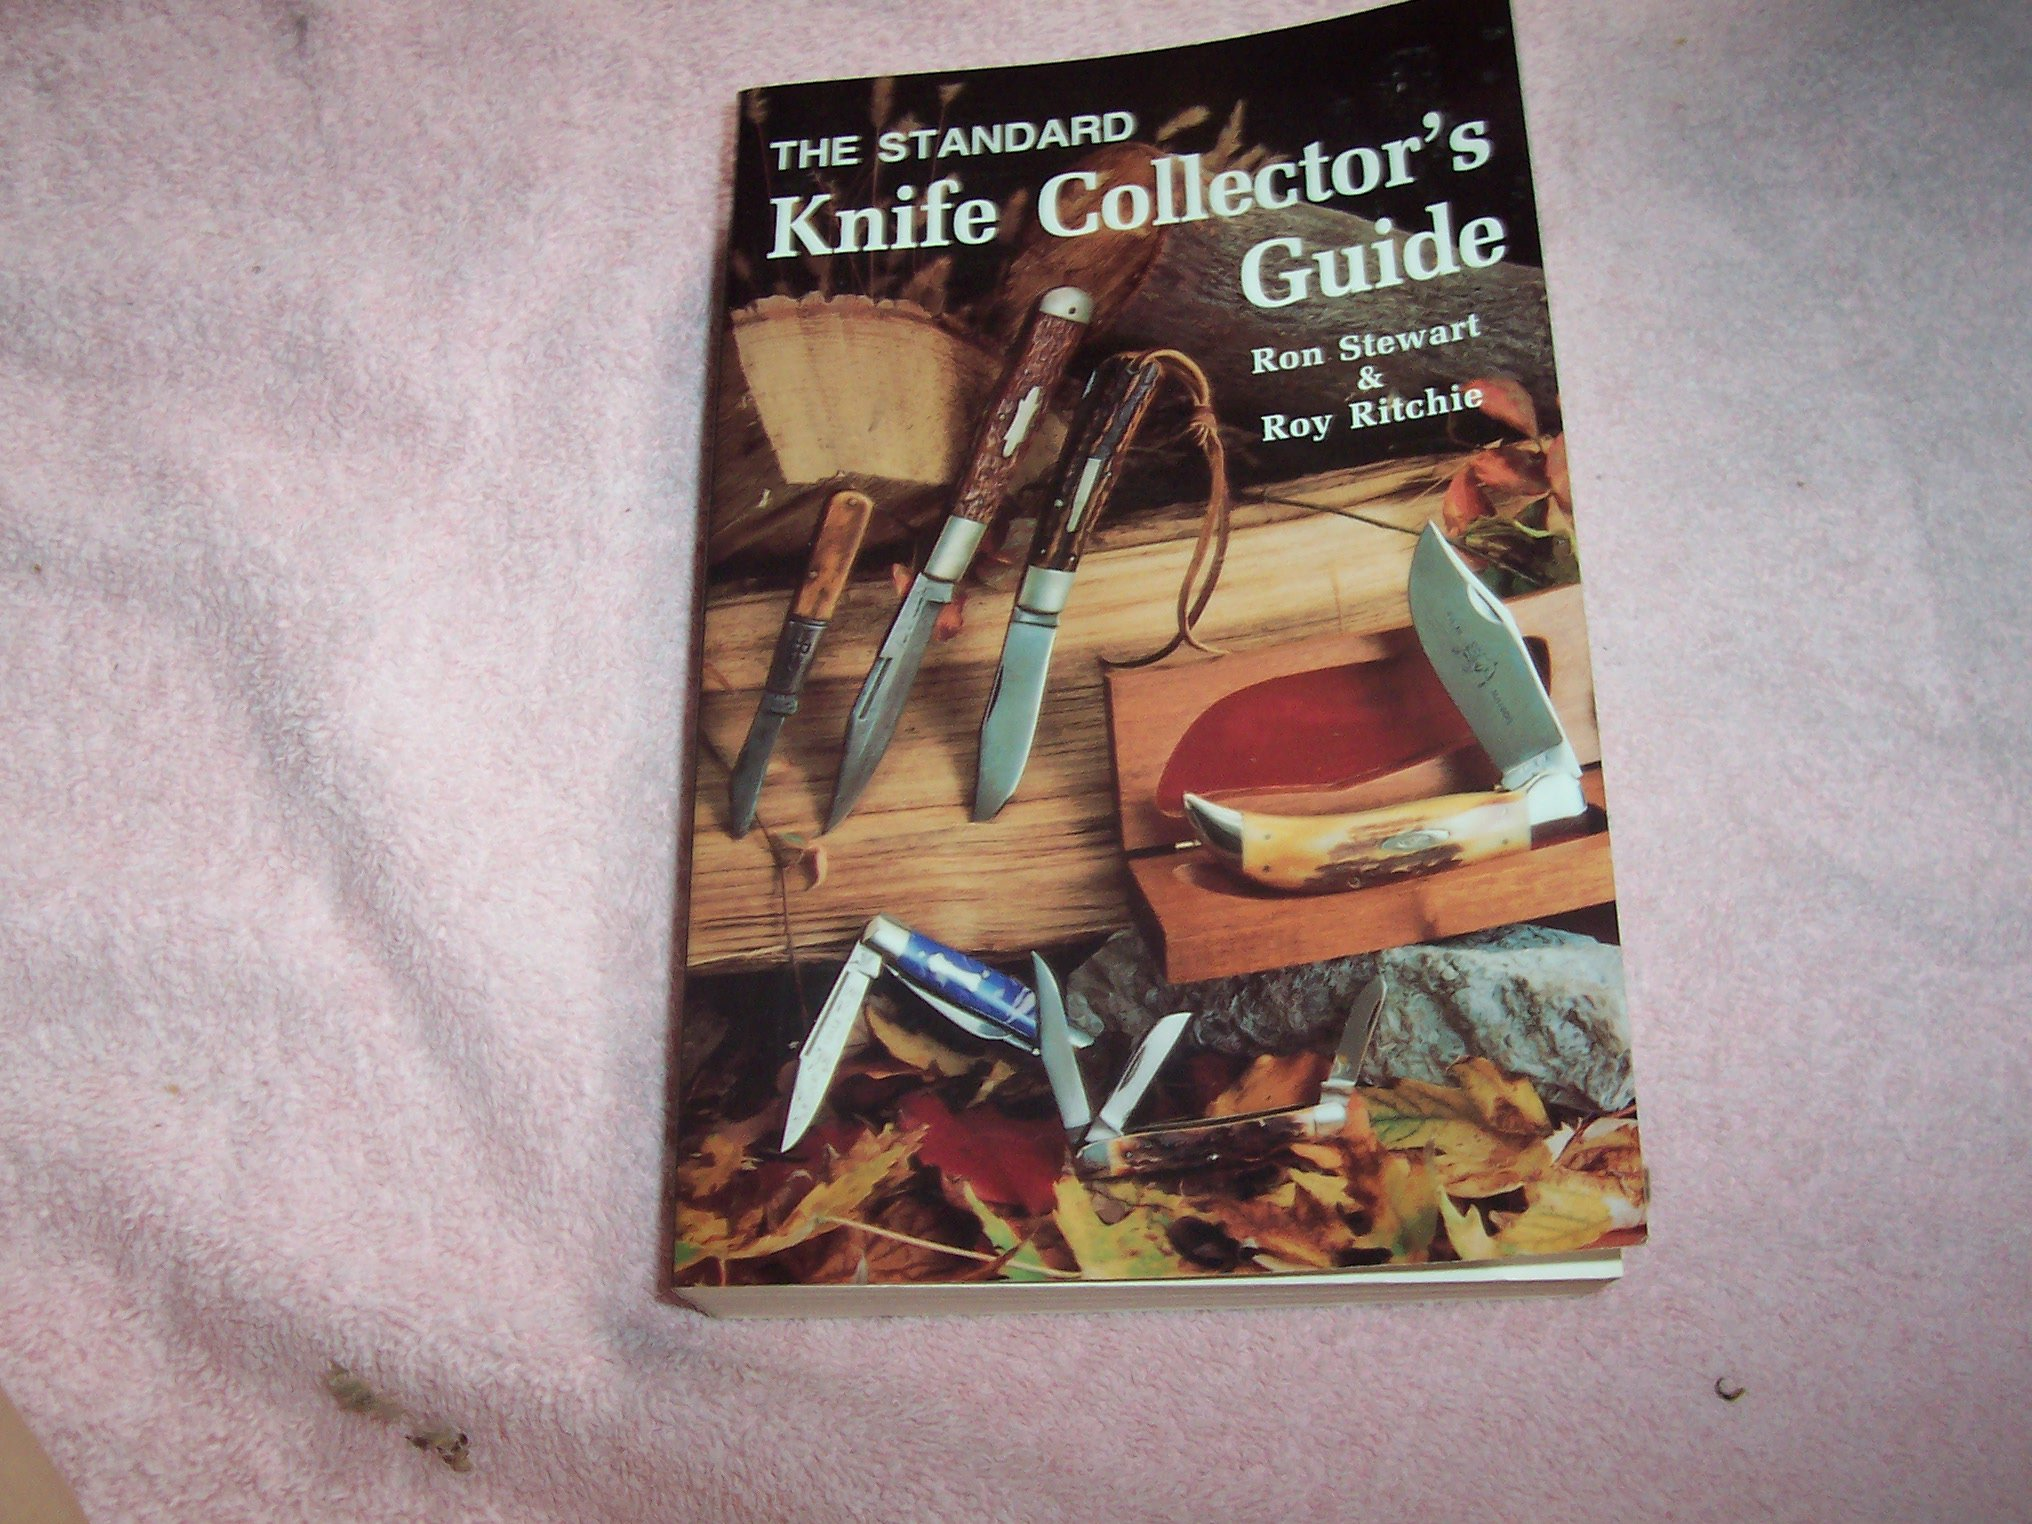 The standard knife collector's guide